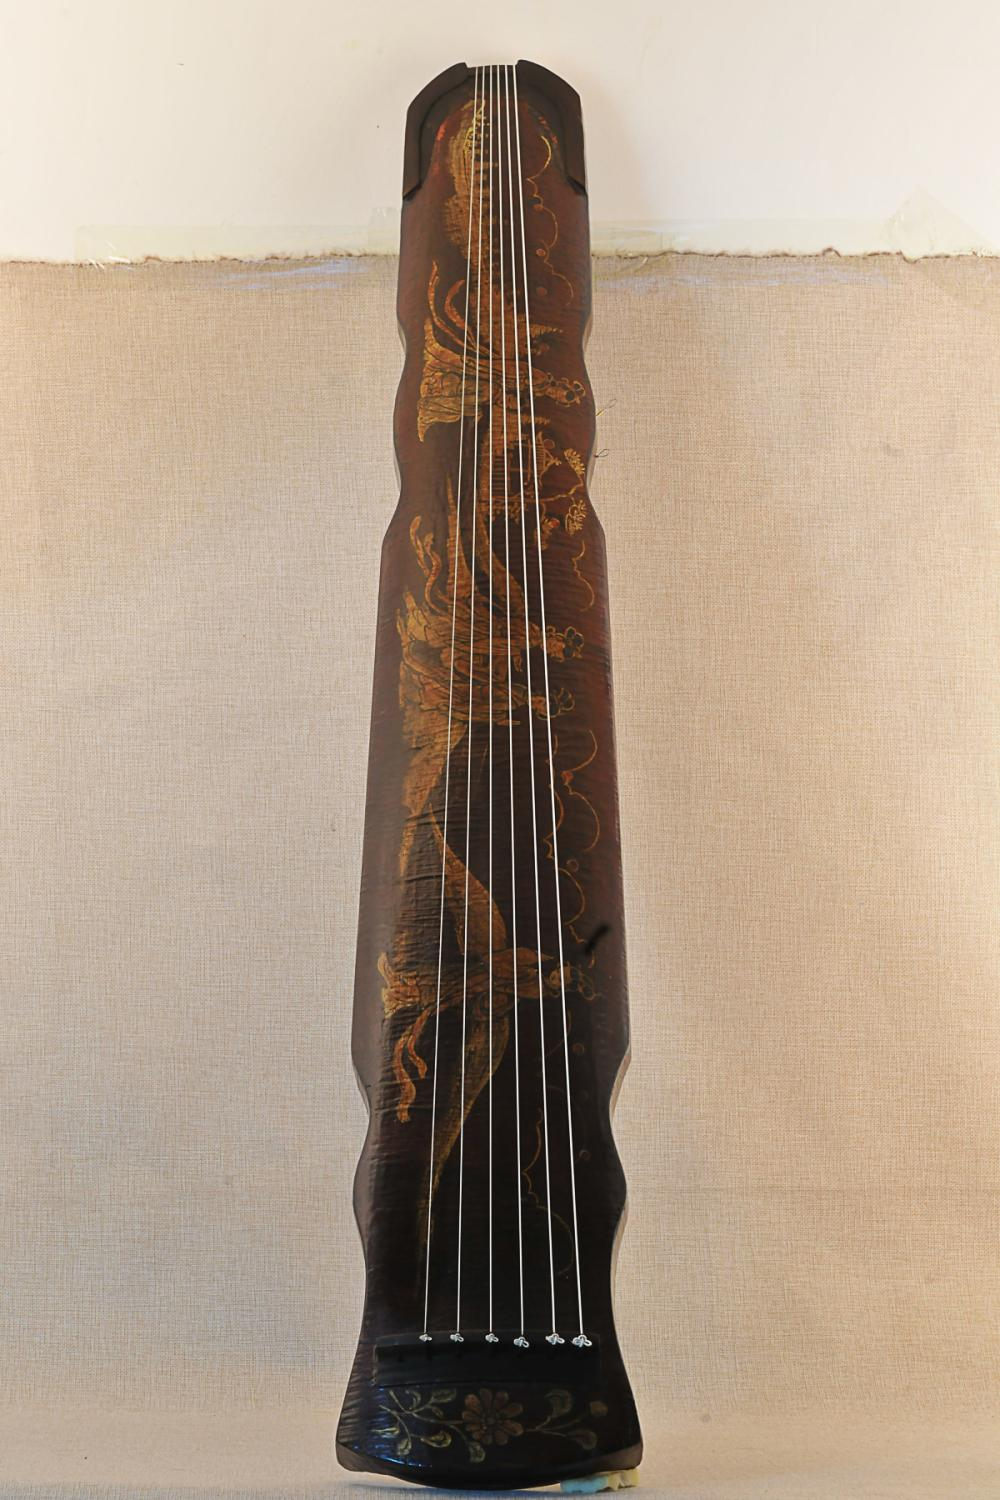 7-9TH CENTURY, AN STRINGED INSTRUMENT OF ANCIENT CHINA, TANG